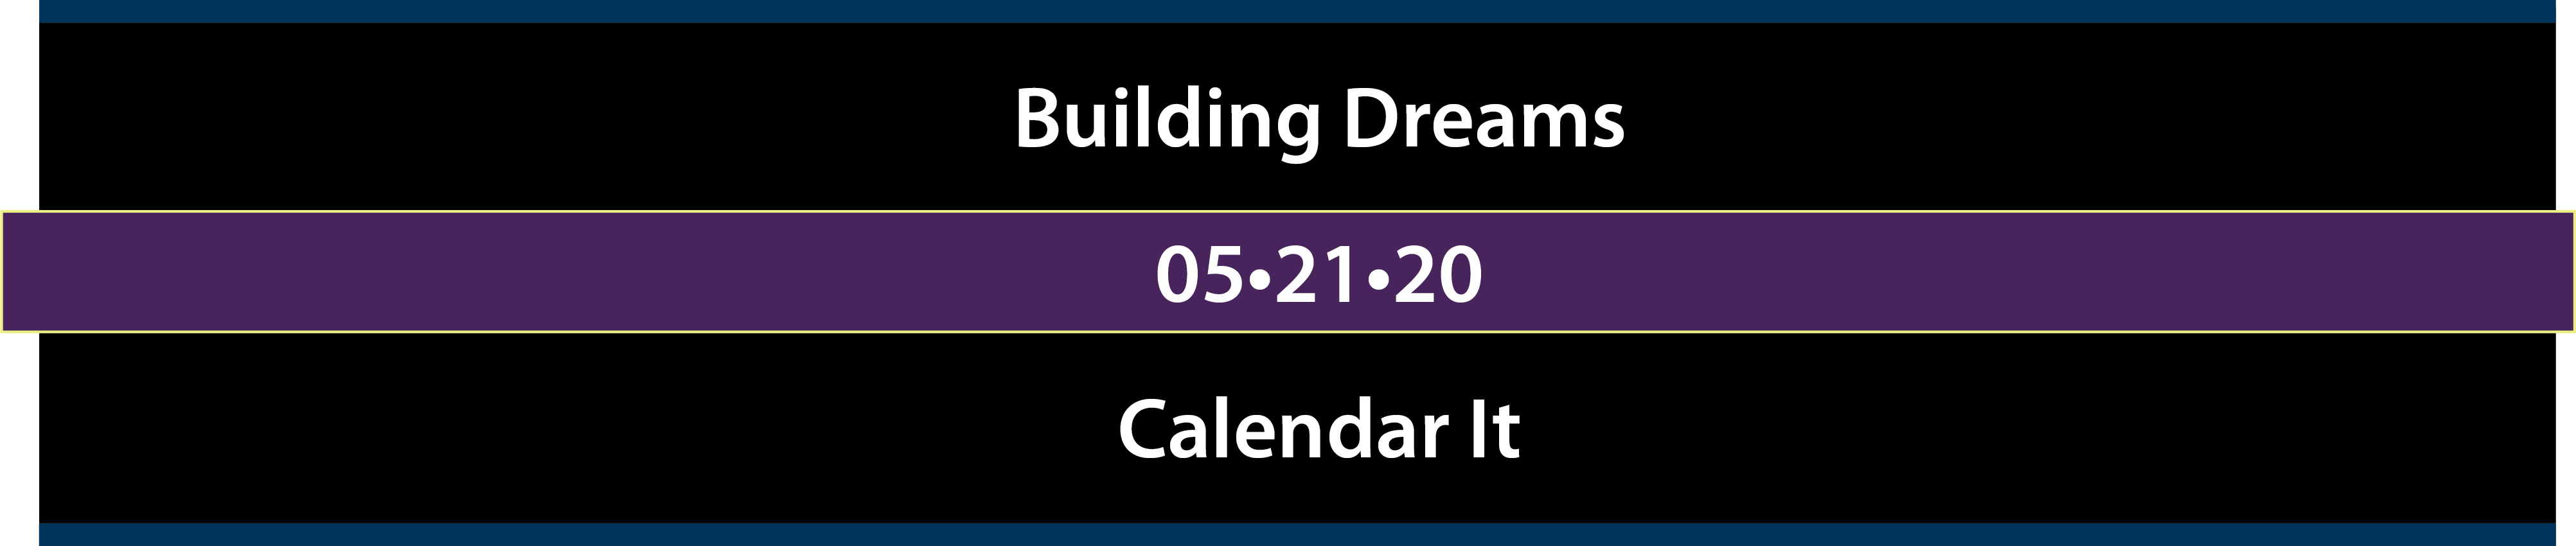 2020 Building Dreams save the date